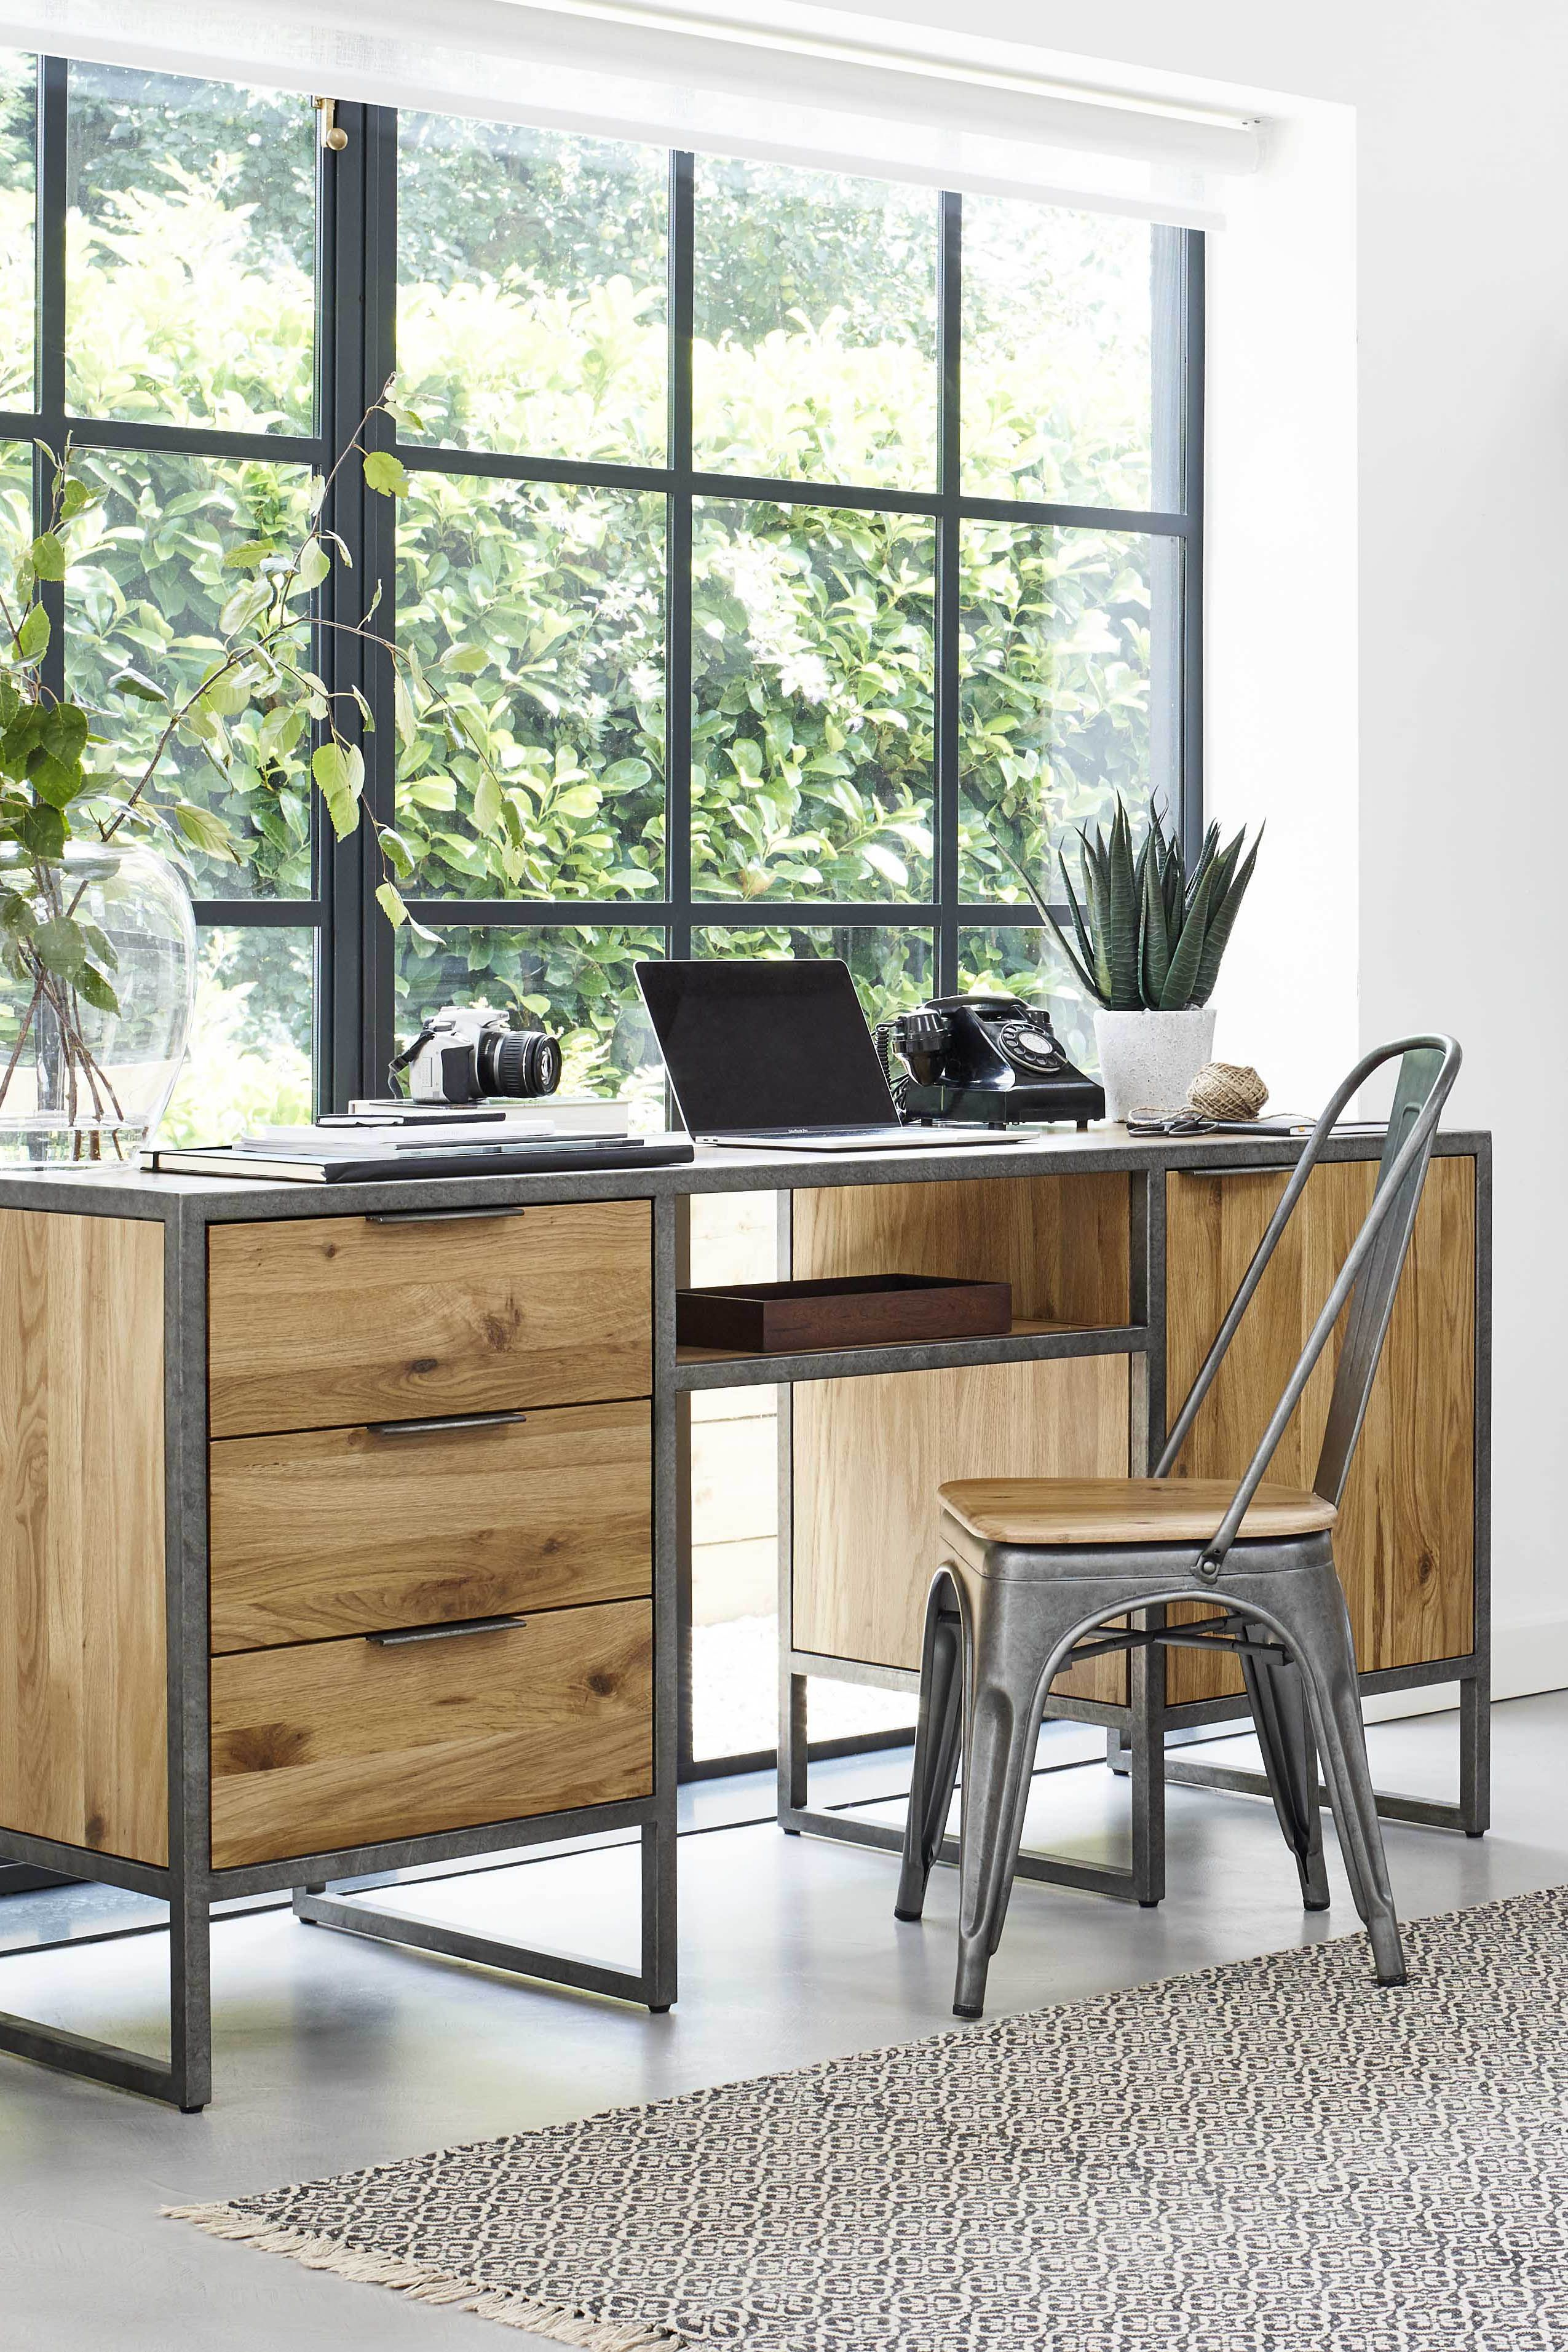 A Welcome Addition To The Modern Home Office This Stylish